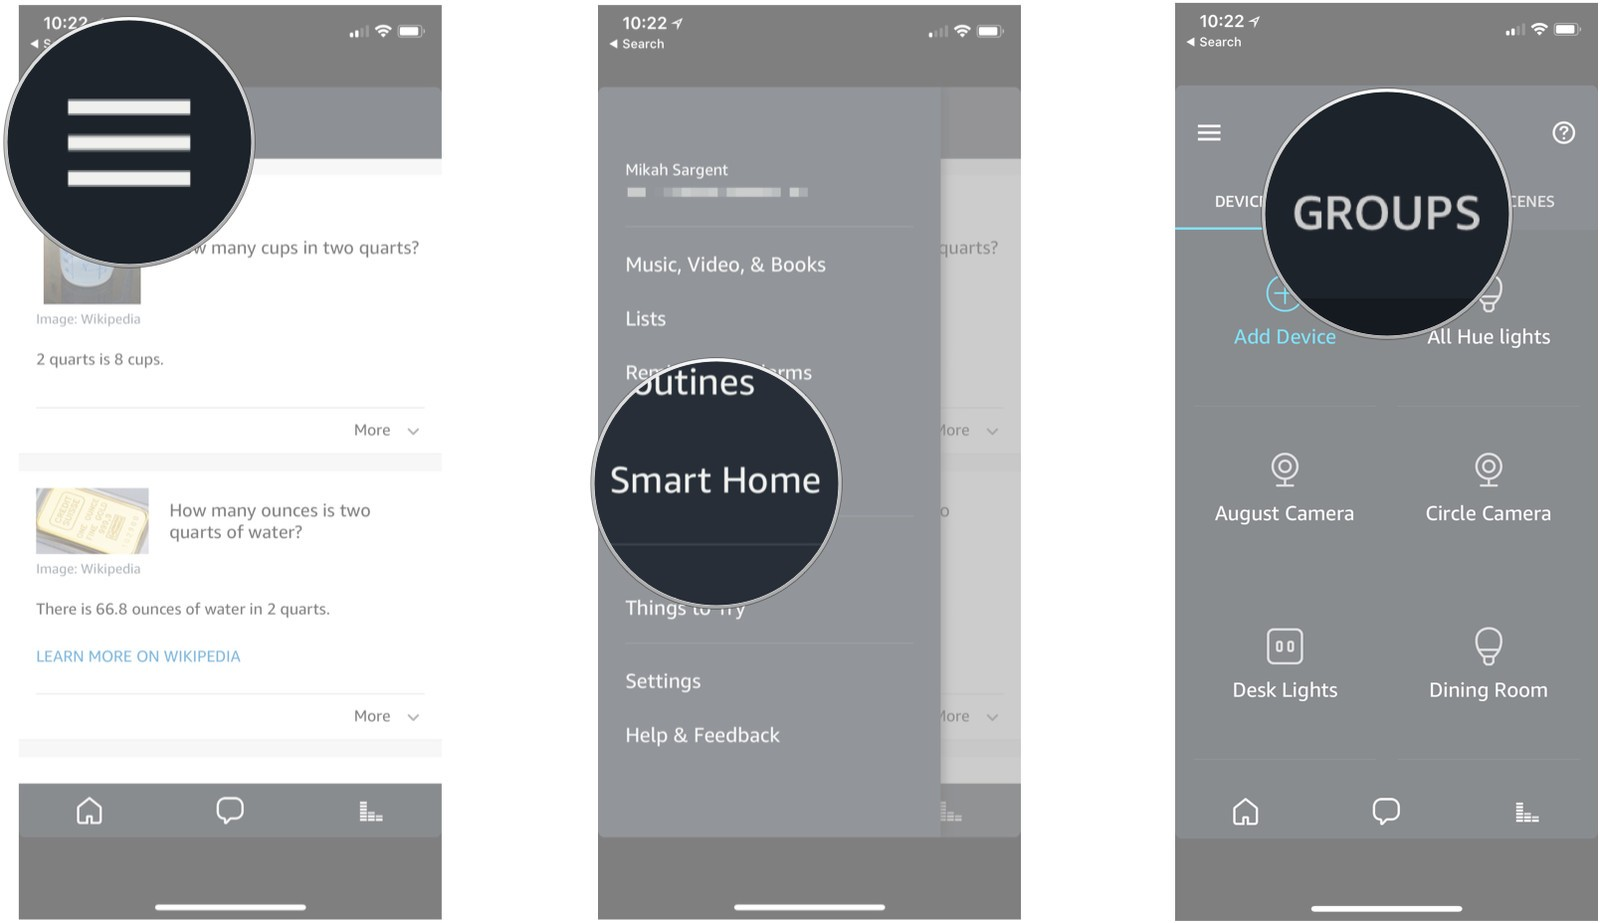 Tap the menu icon, then tap Smart Home, then tap Groups